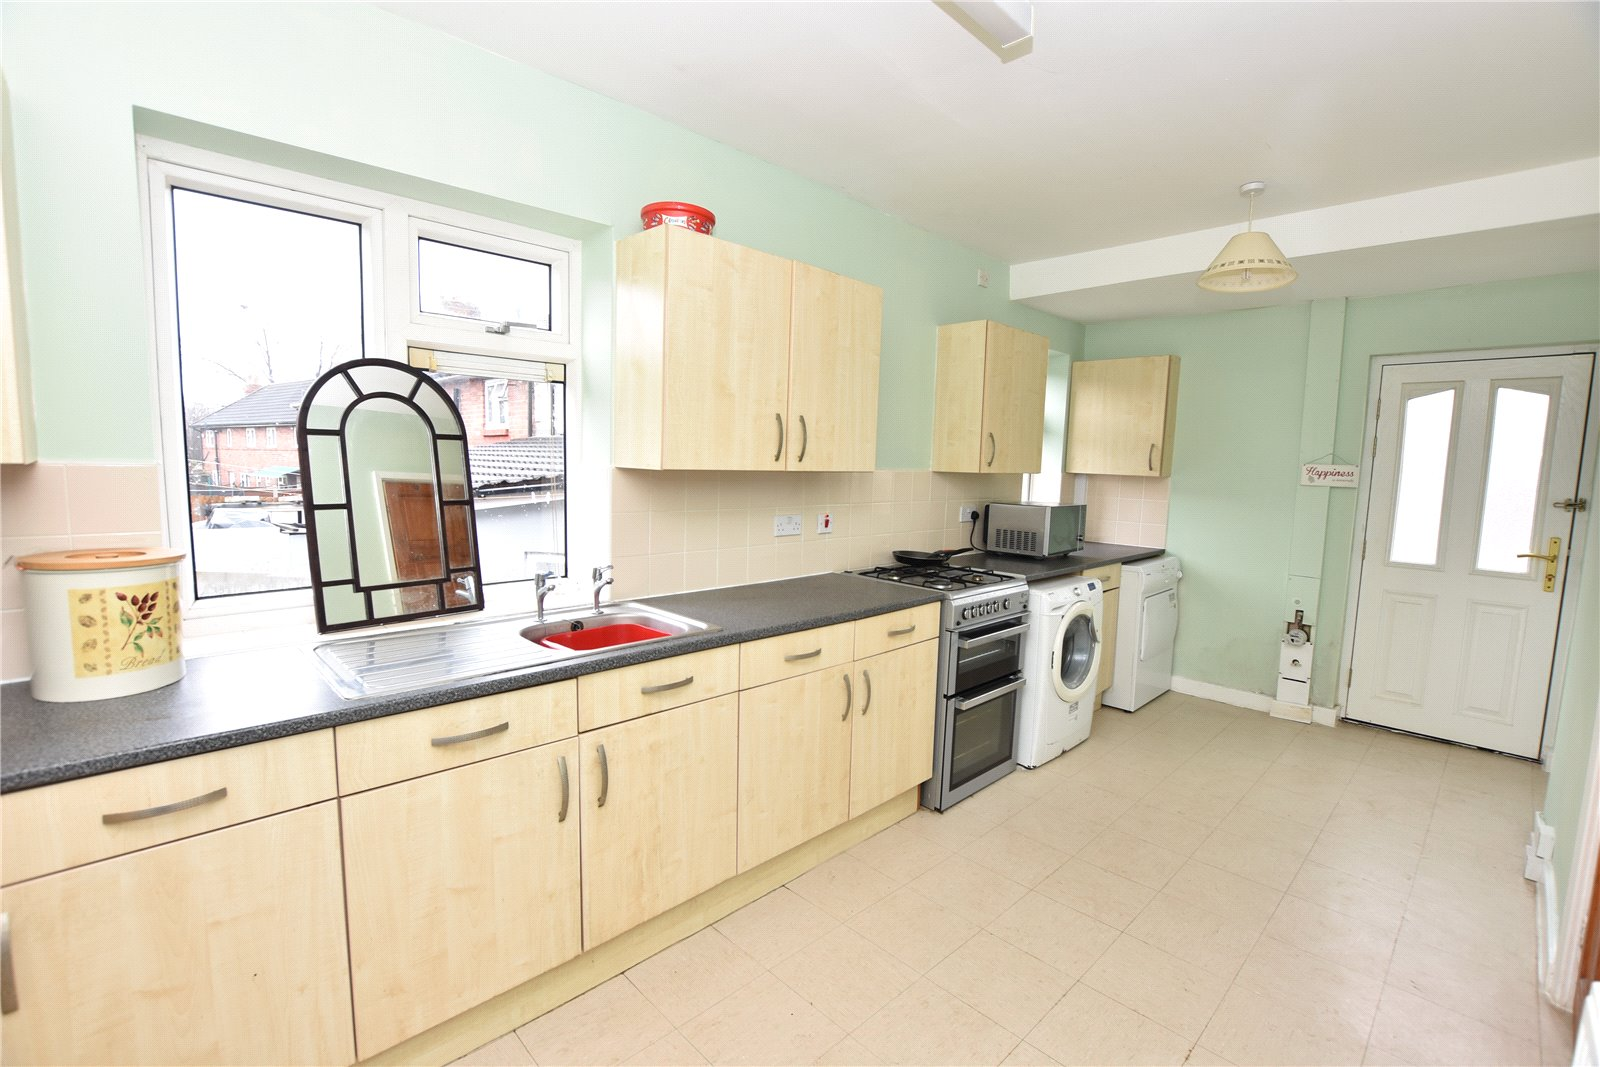 Property for sale in Crossgates, Interior kitchen fitted